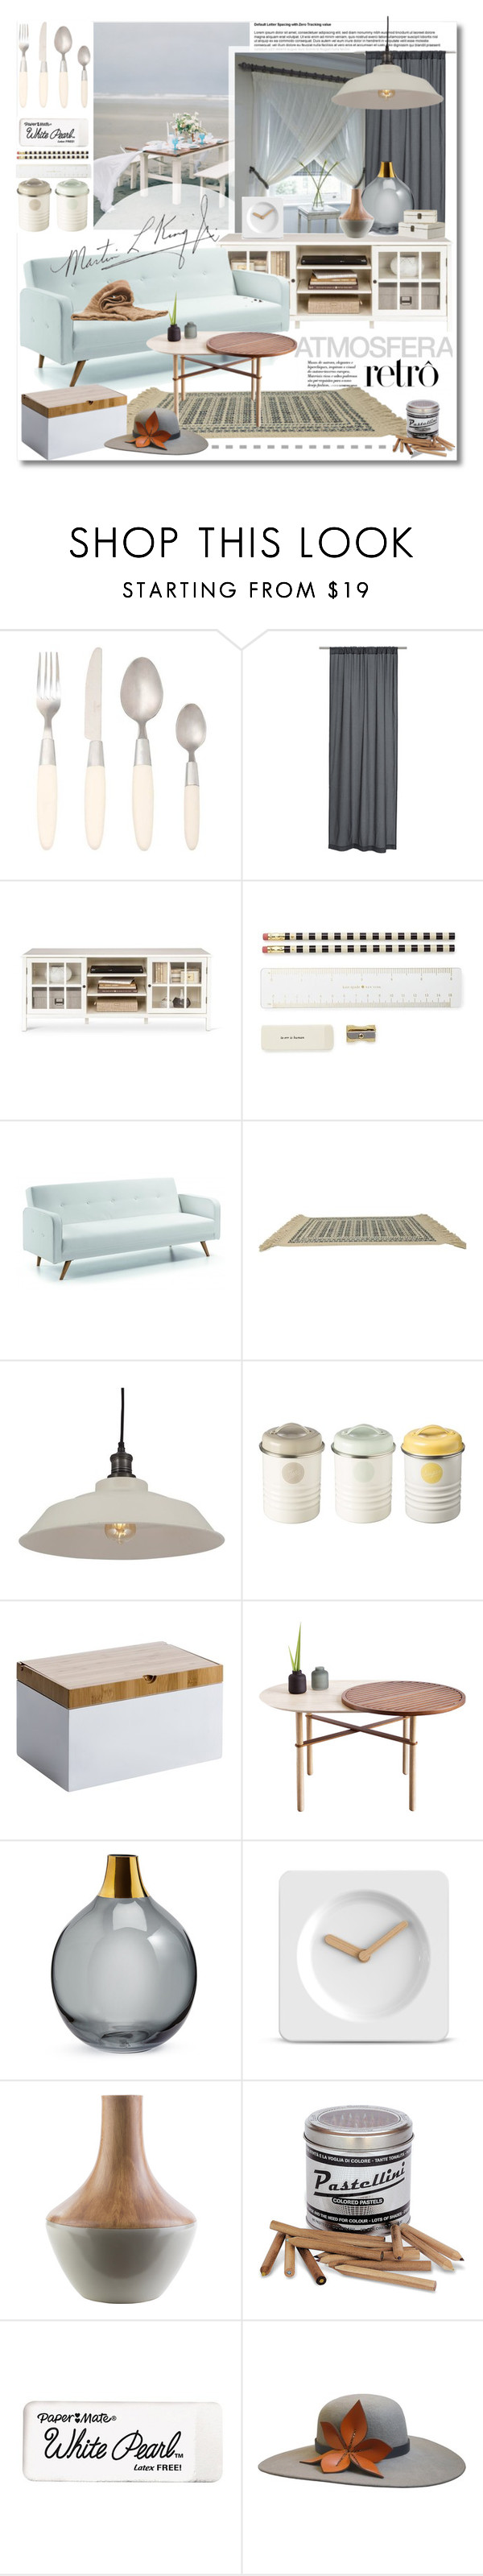 """""""End of summer"""" by undici ❤ liked on Polyvore featuring interior, interiors, interior design, home, home decor, interior decorating, Viners, H&M, Threshold and Kate Spade"""